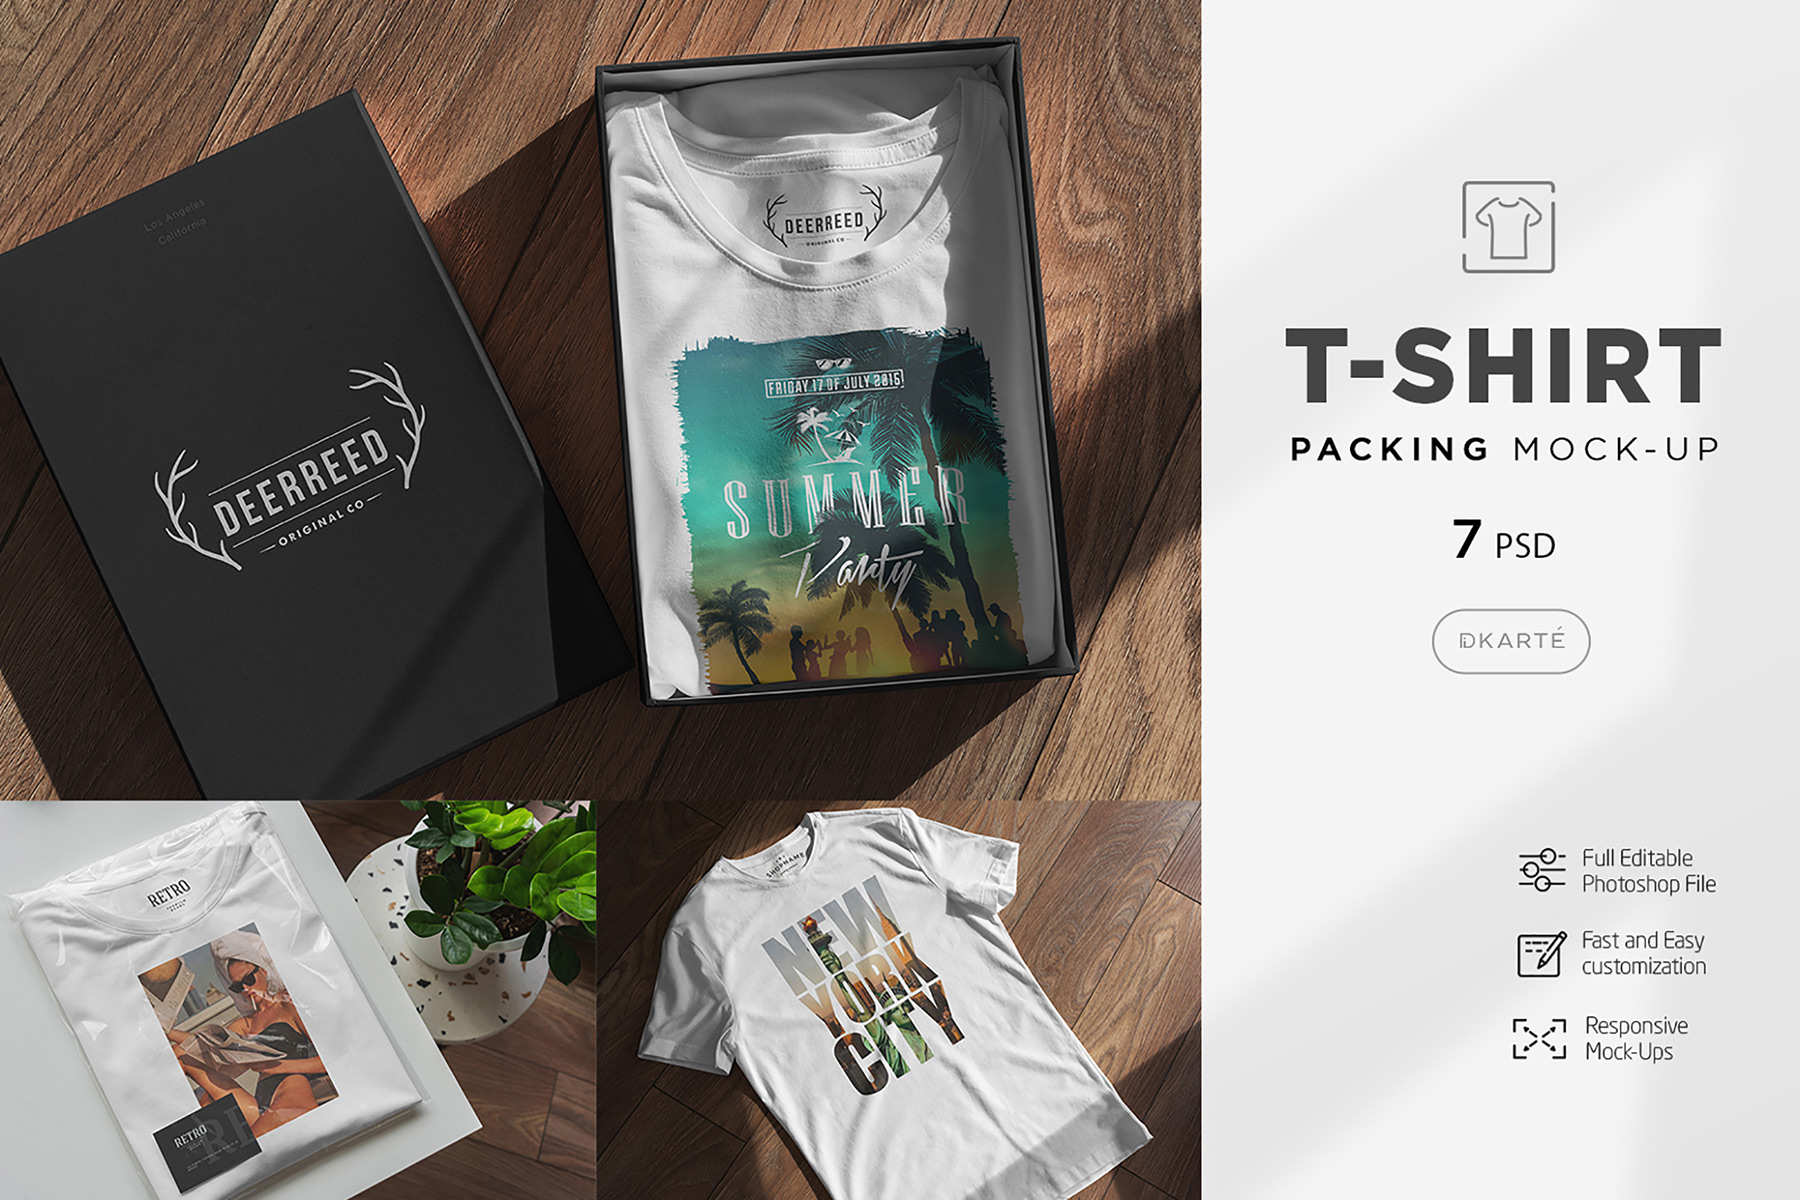 T-Shirt Packing Mock-Up